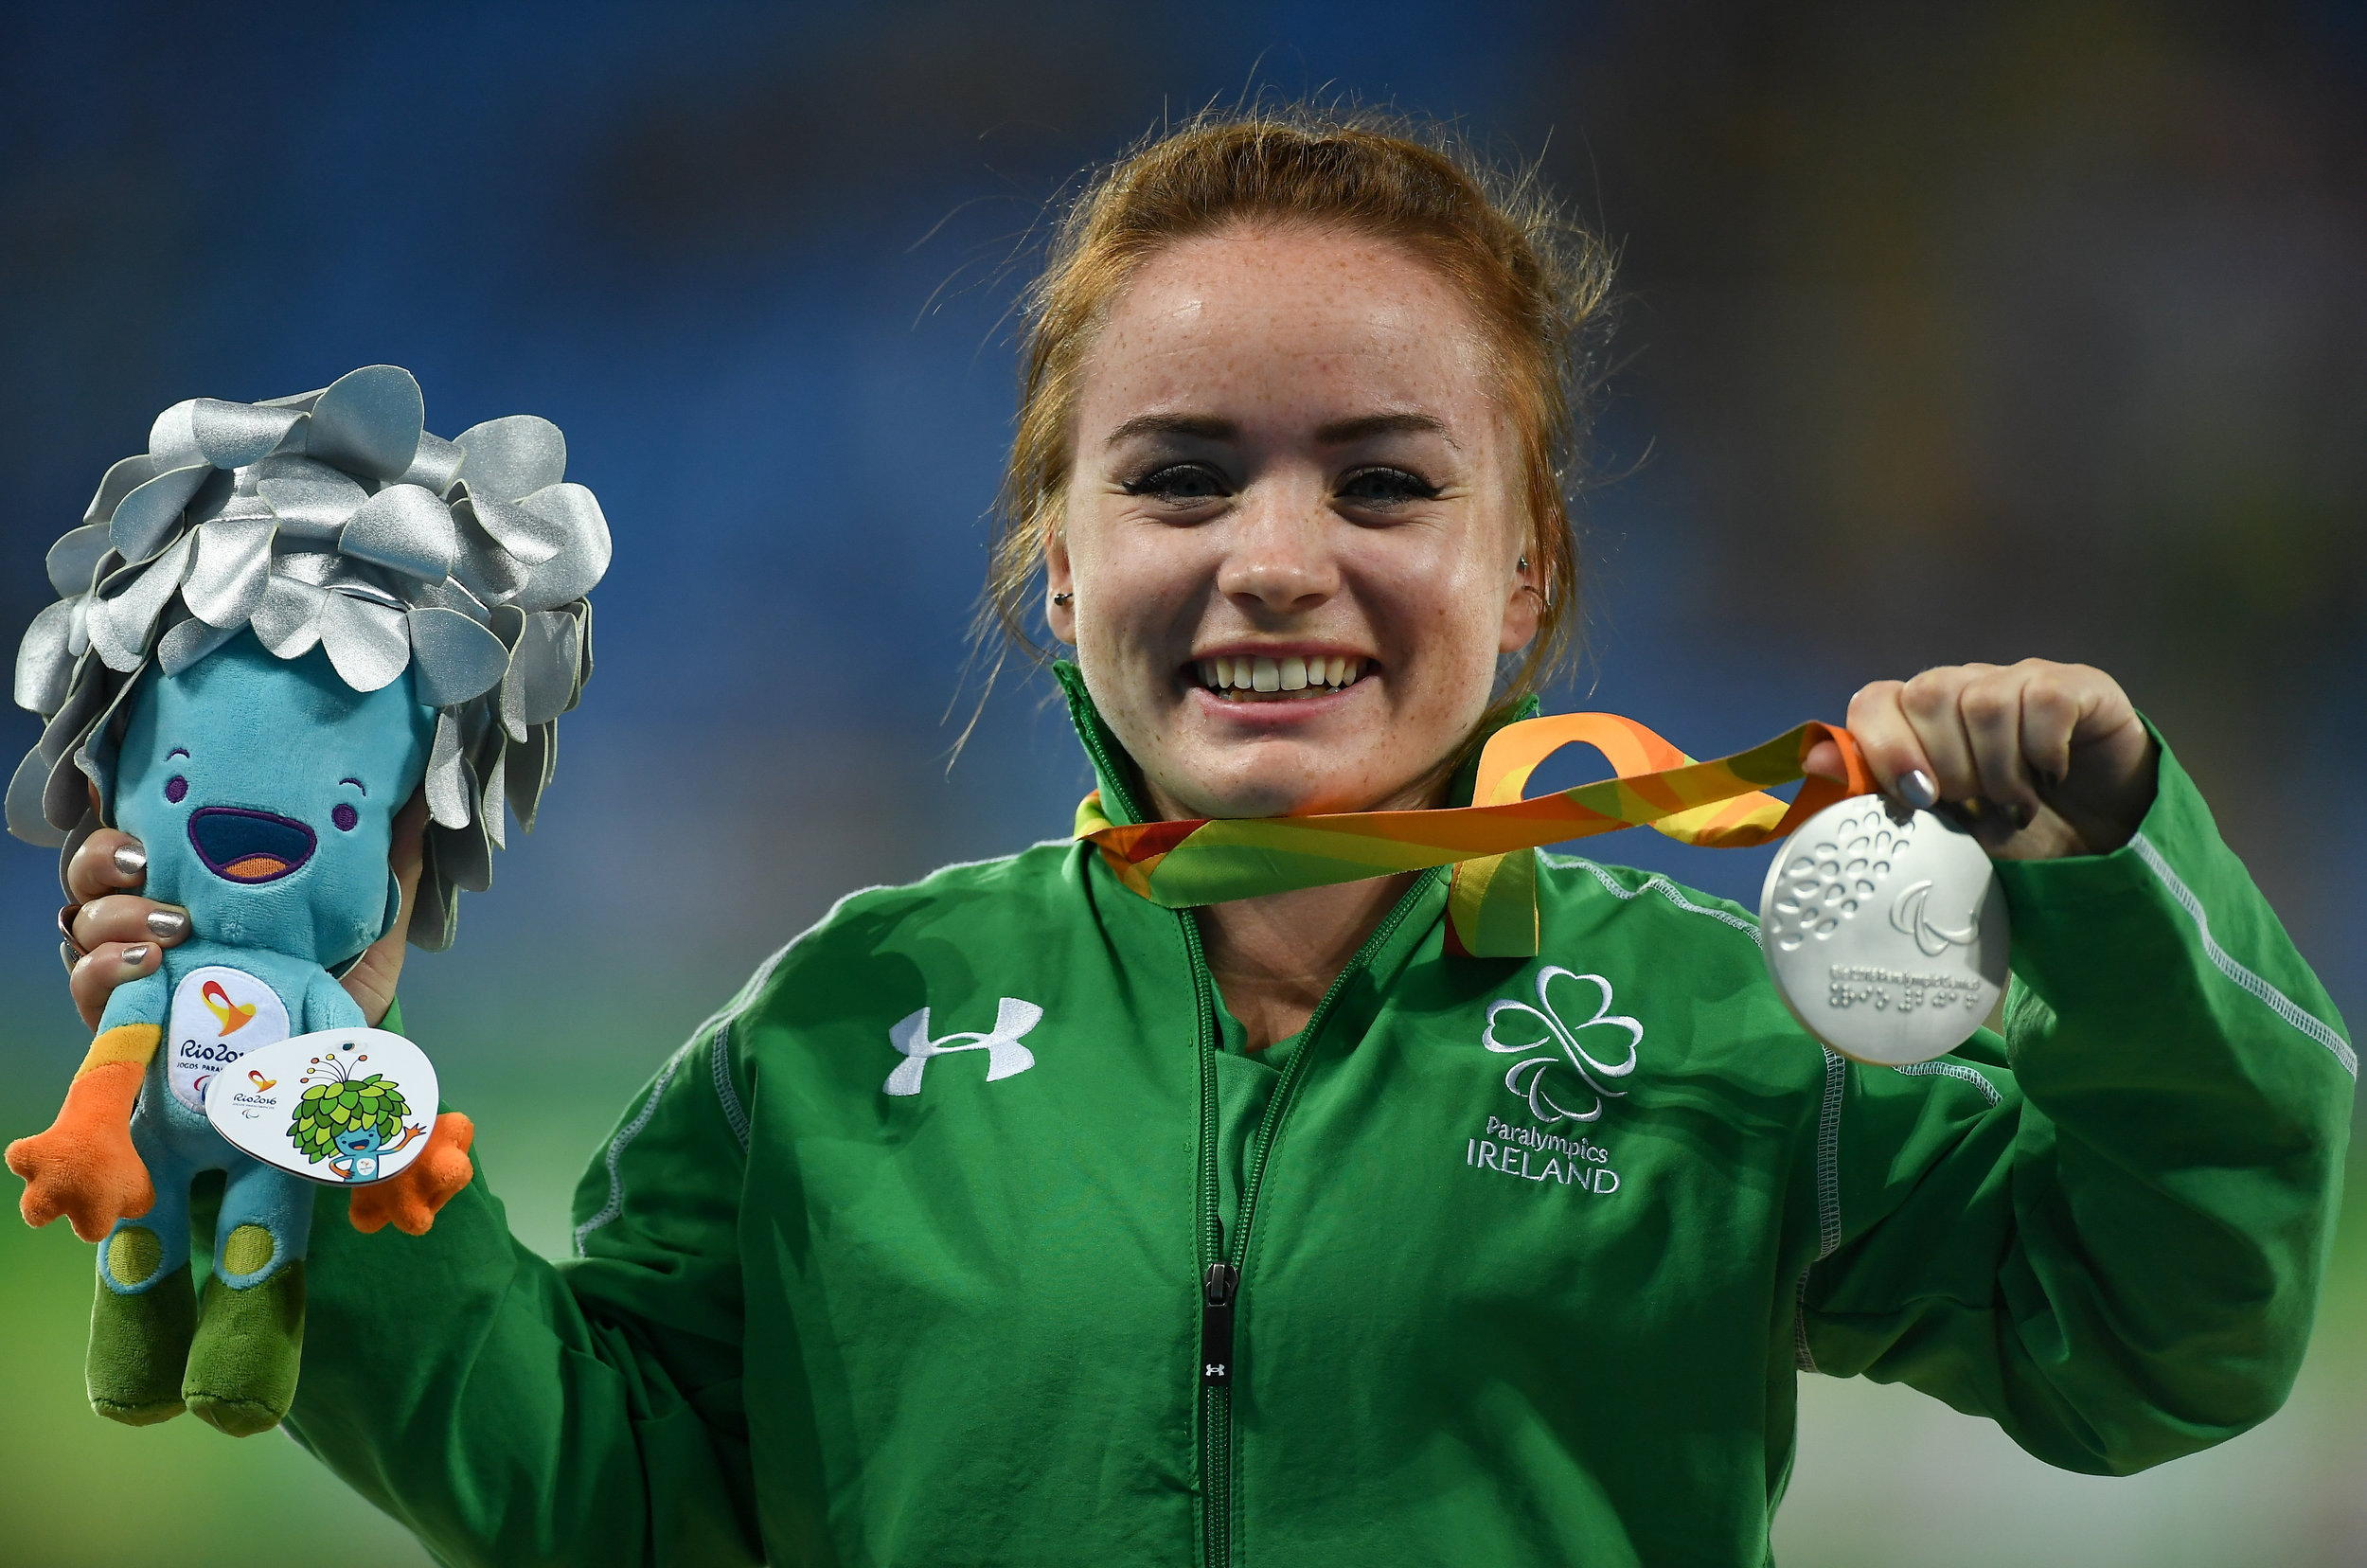 Athletics: Niamh MCarthy after winning Silver in the F41 Discus Final